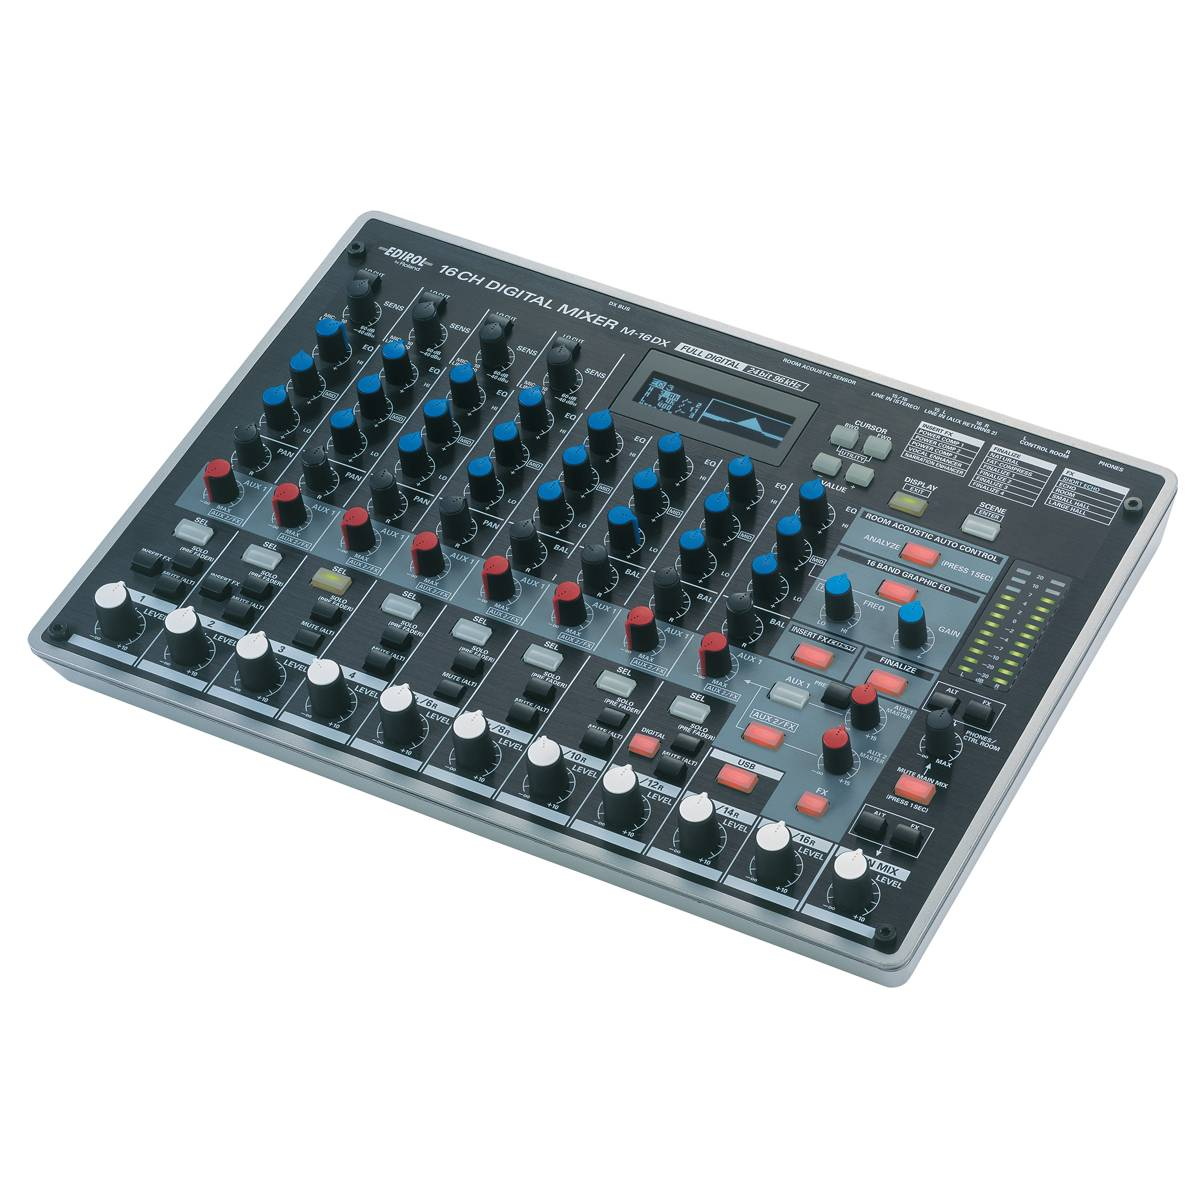 edirol m 16dx digital audio mixer interface usb interfaces from inta audio uk. Black Bedroom Furniture Sets. Home Design Ideas